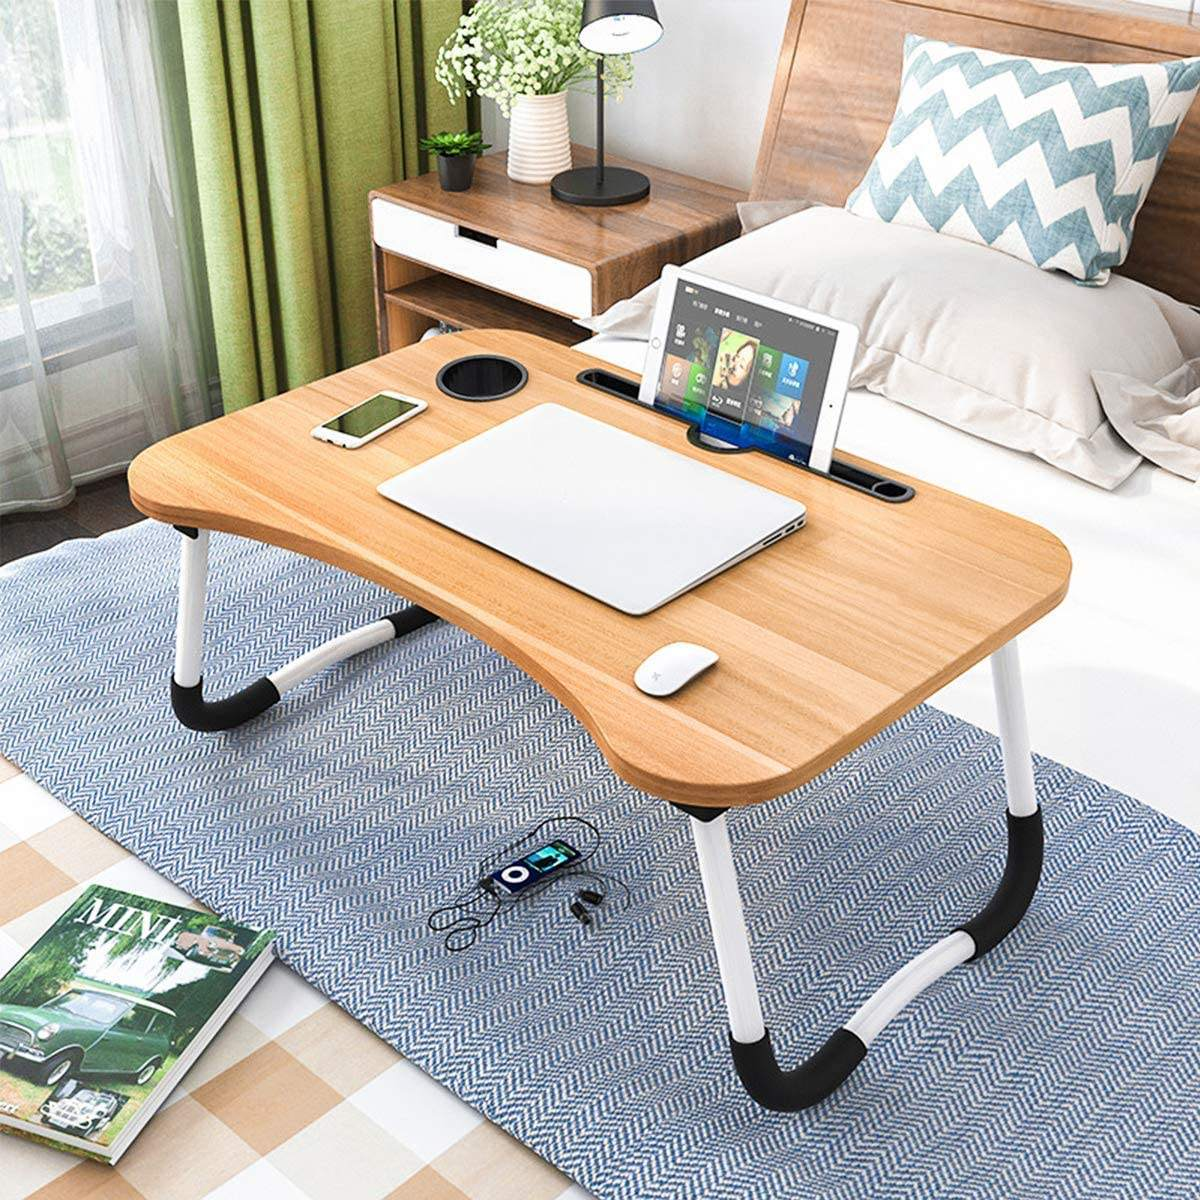 Modern Small Dormitory Table Breakfast Serving Black Adjustable Portable Foldable Wooden Laptop Computer Desk for Use Bedroom